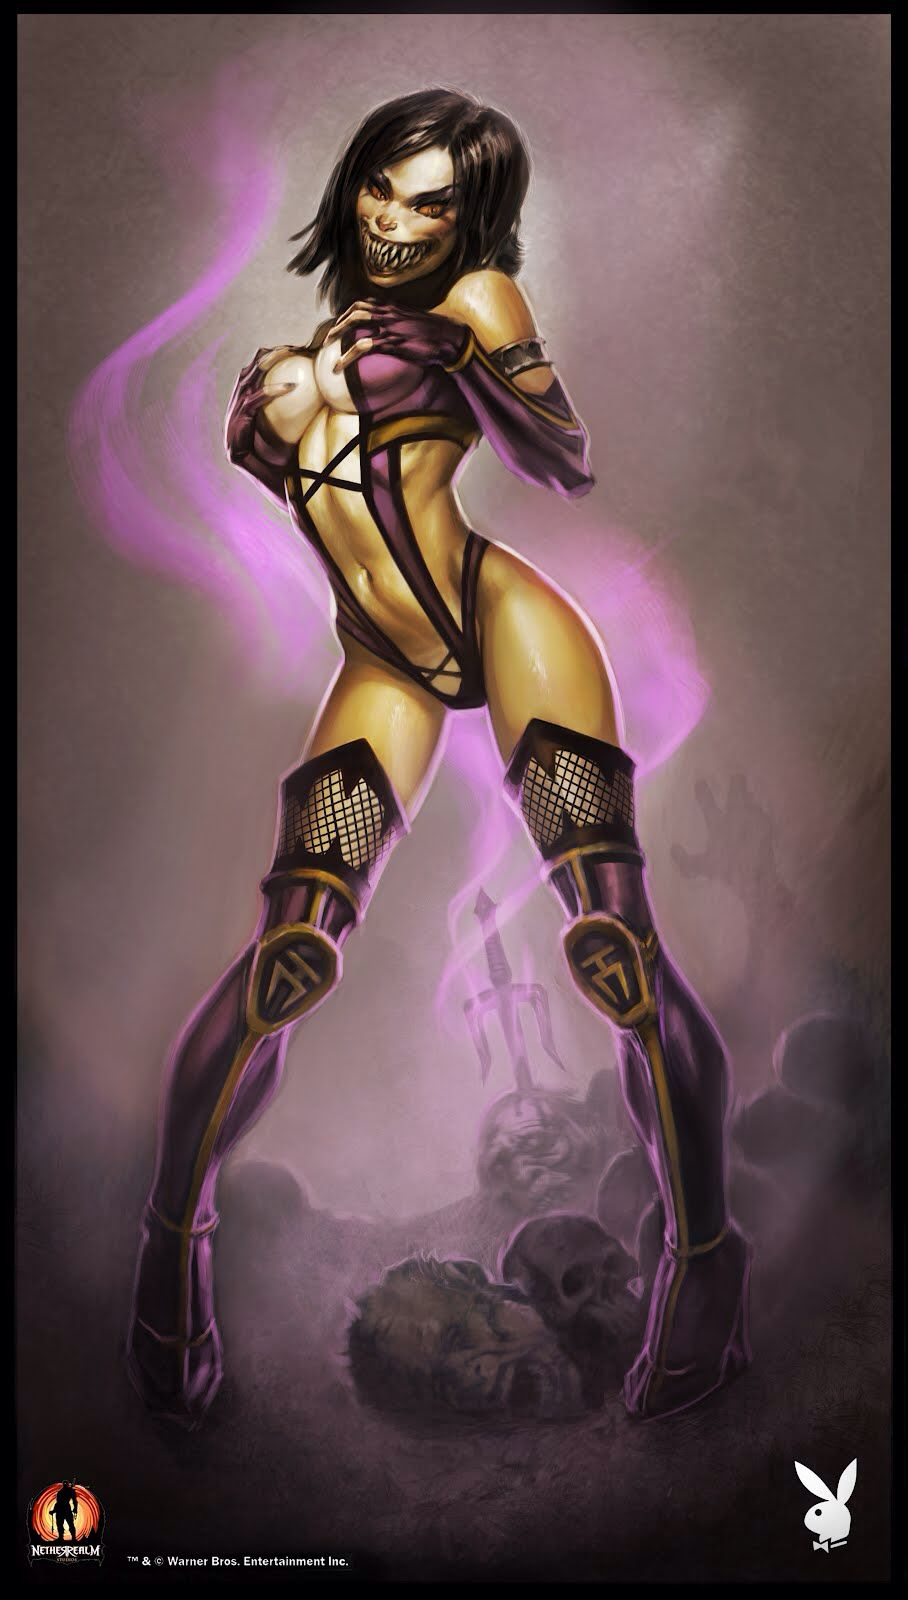 Mileena Playboy Super Heroi Vilas Personagens